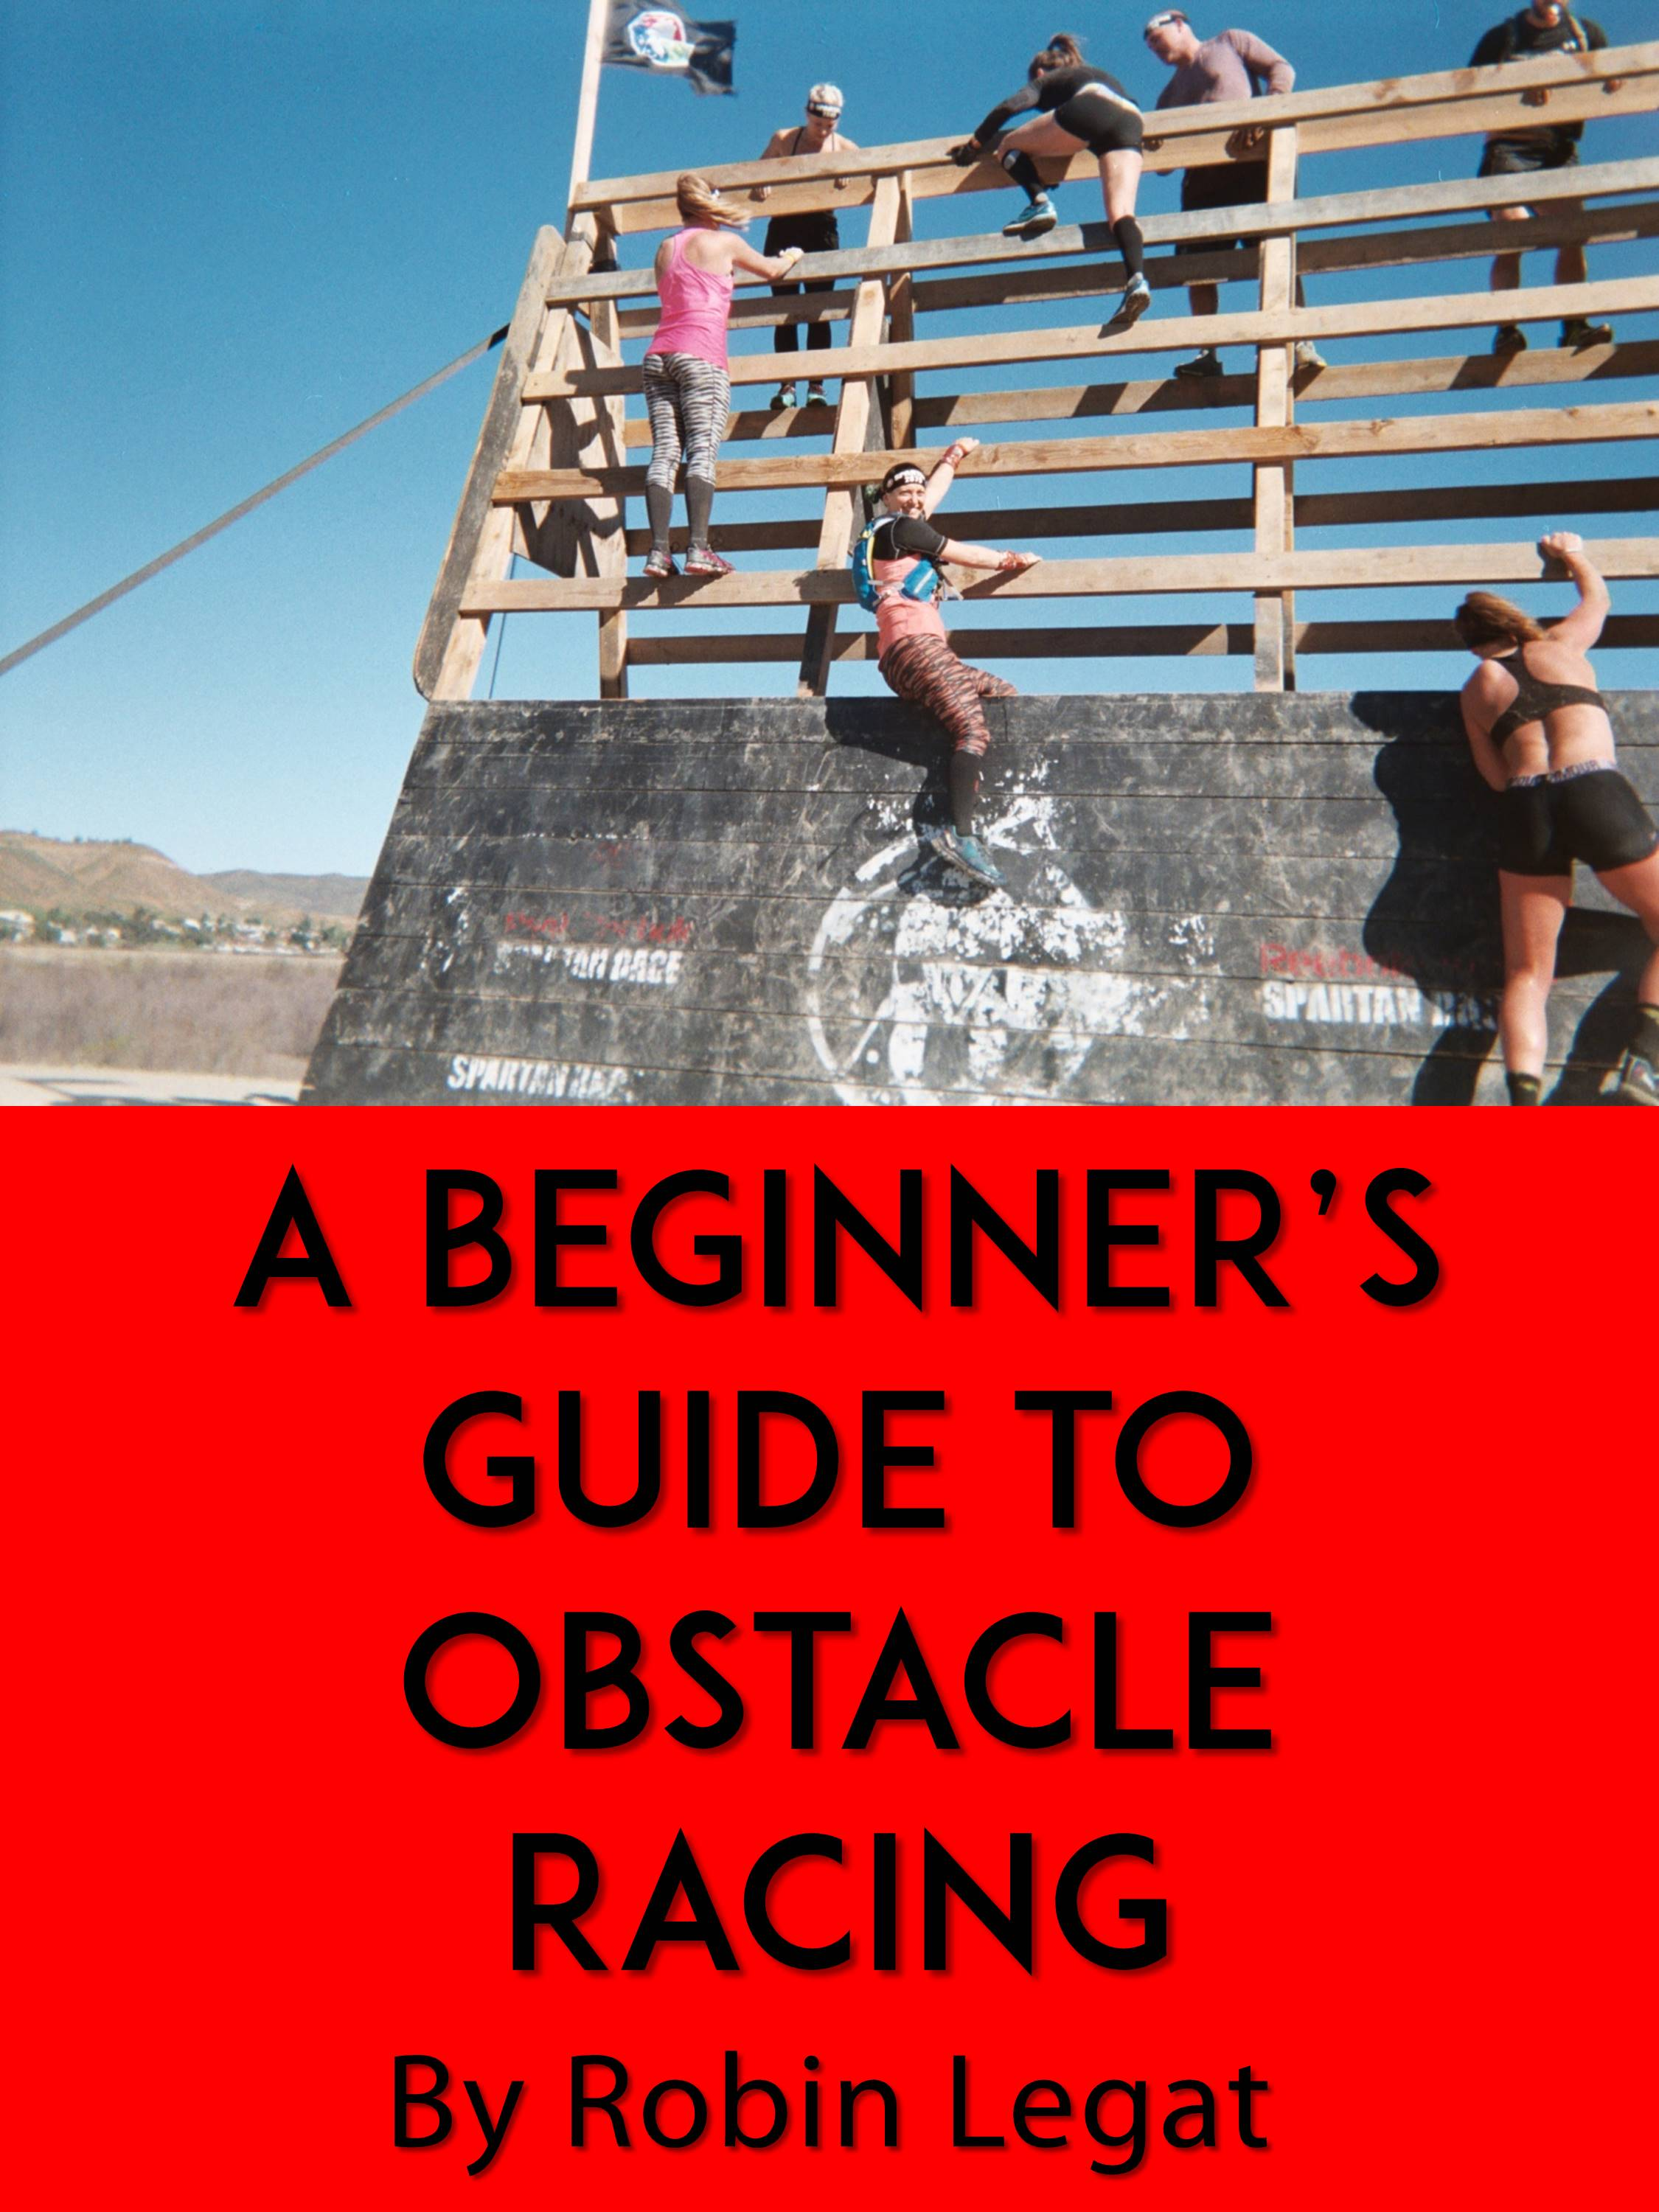 Click above image to access the Beginner's Guide to Obstacle Racing E-Book!